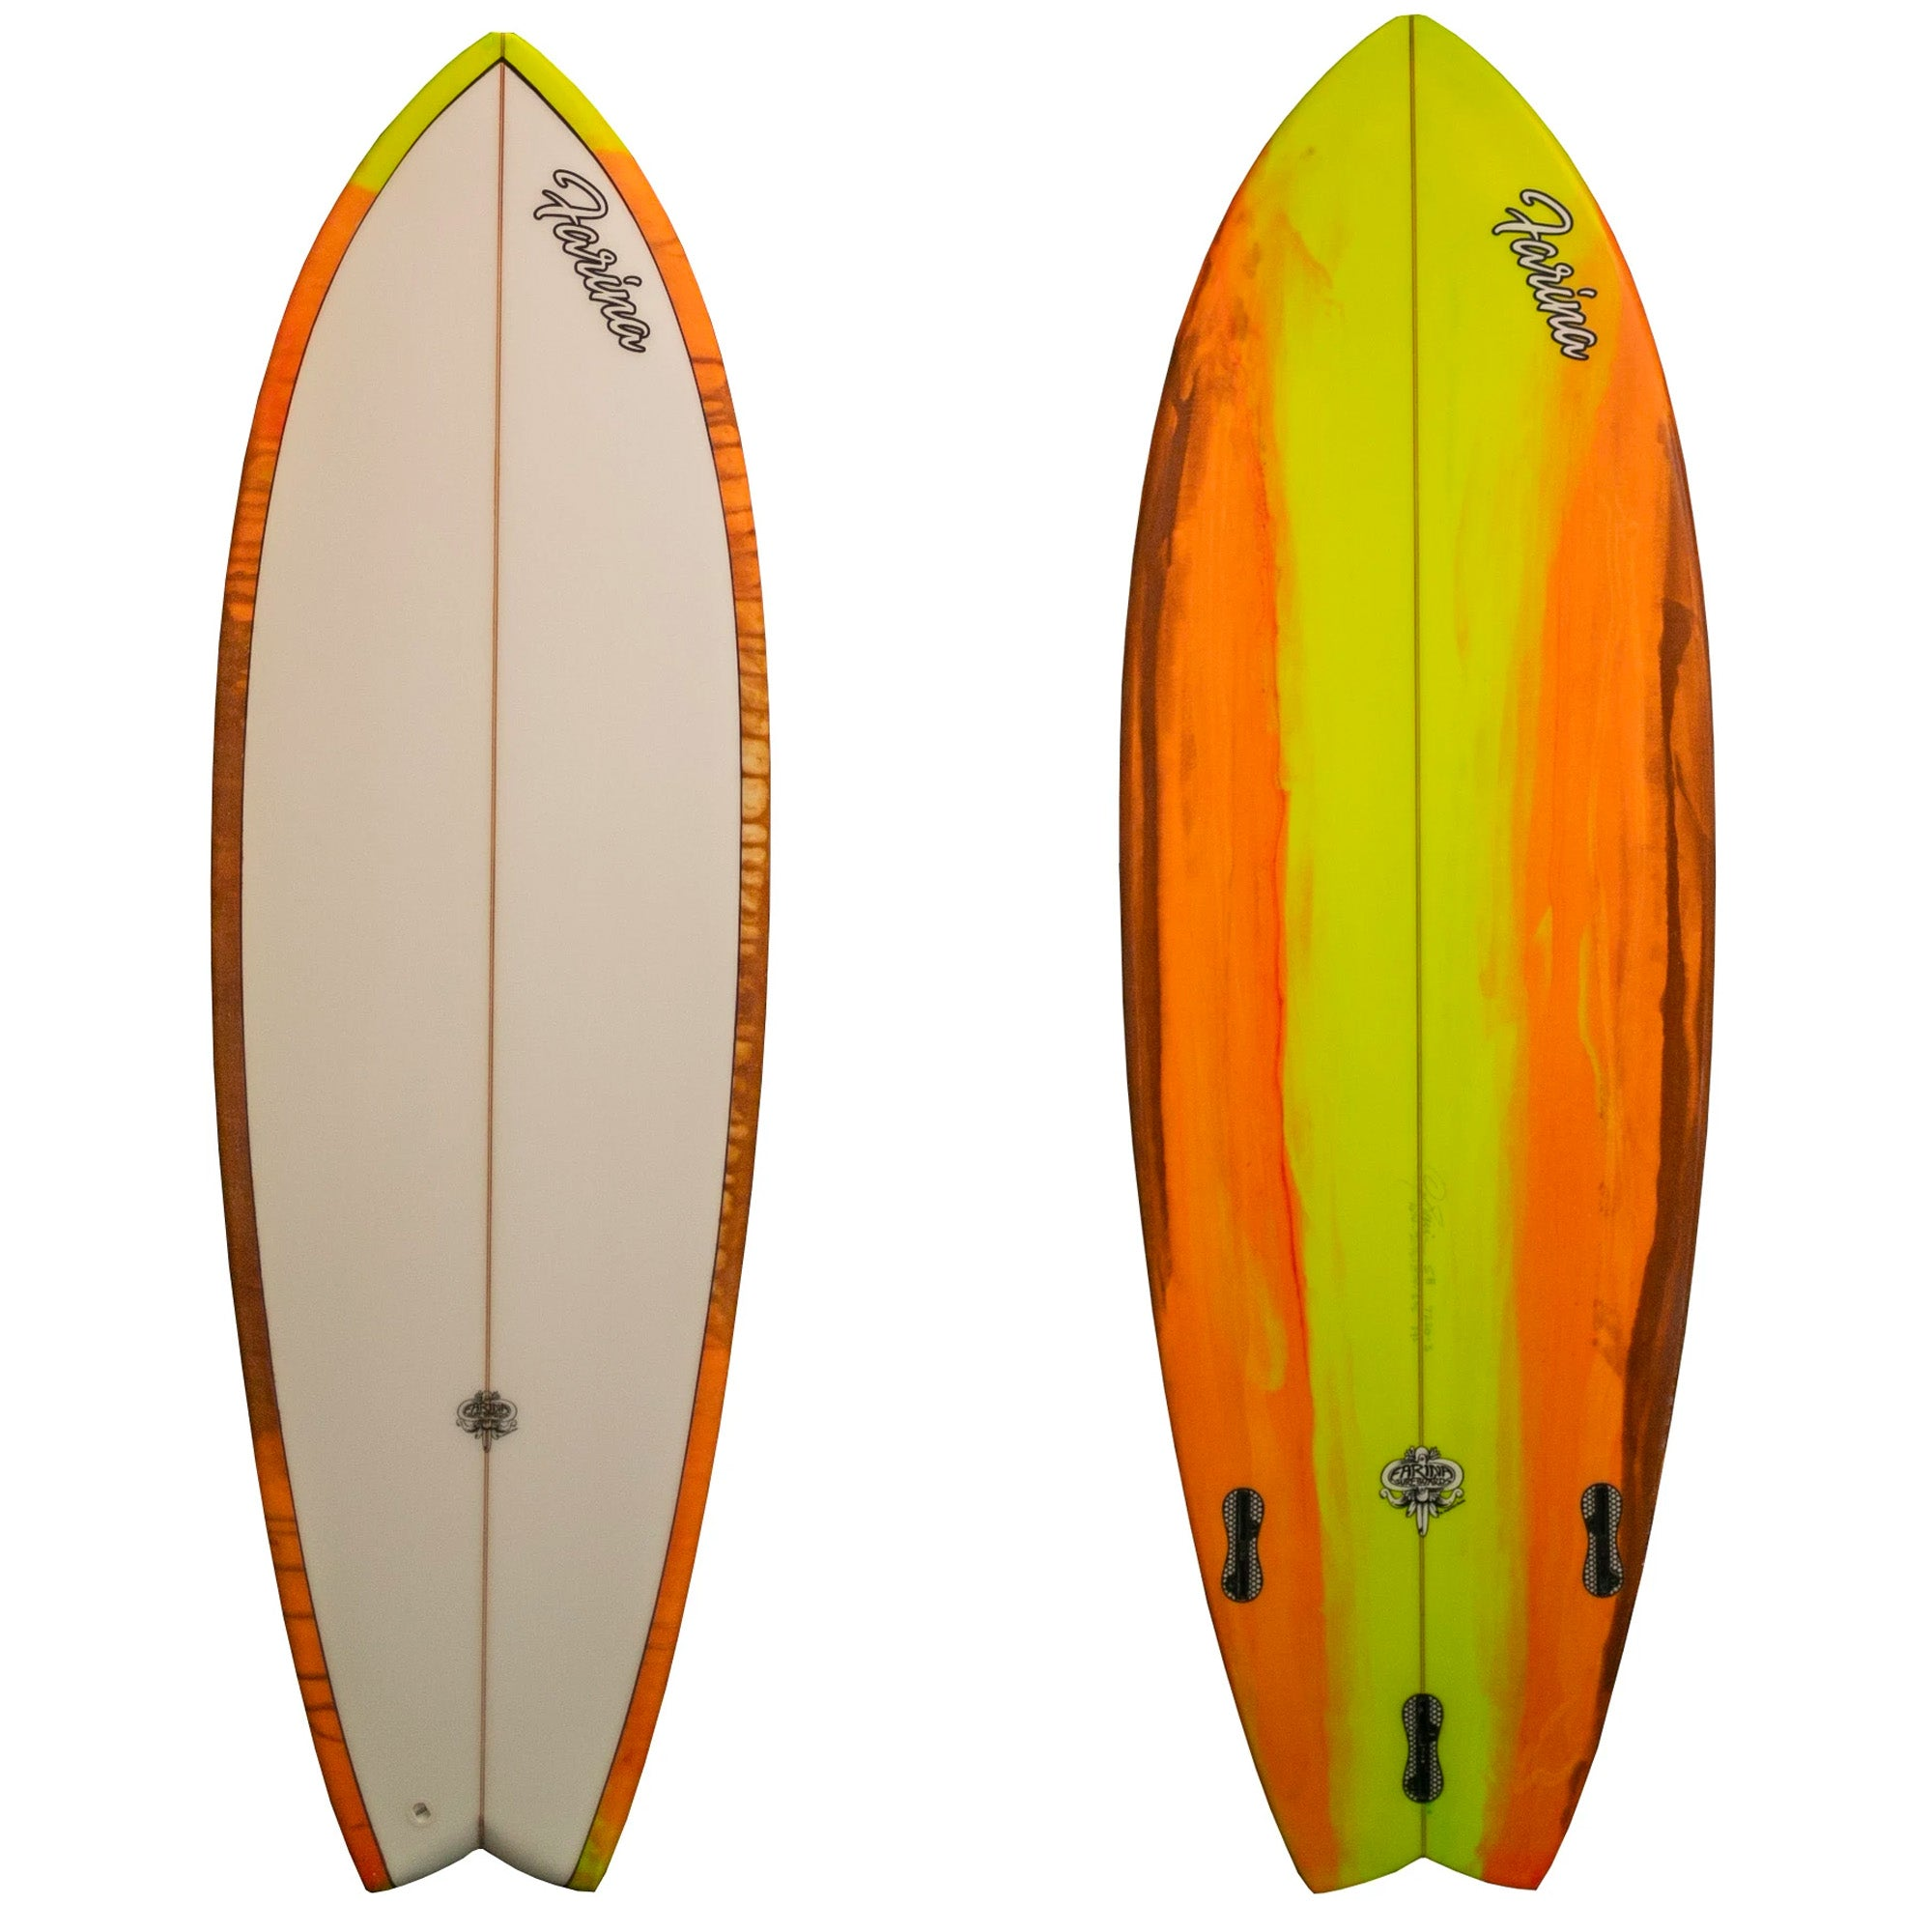 Farina Handcrafted 5'8 Fish Surfboard